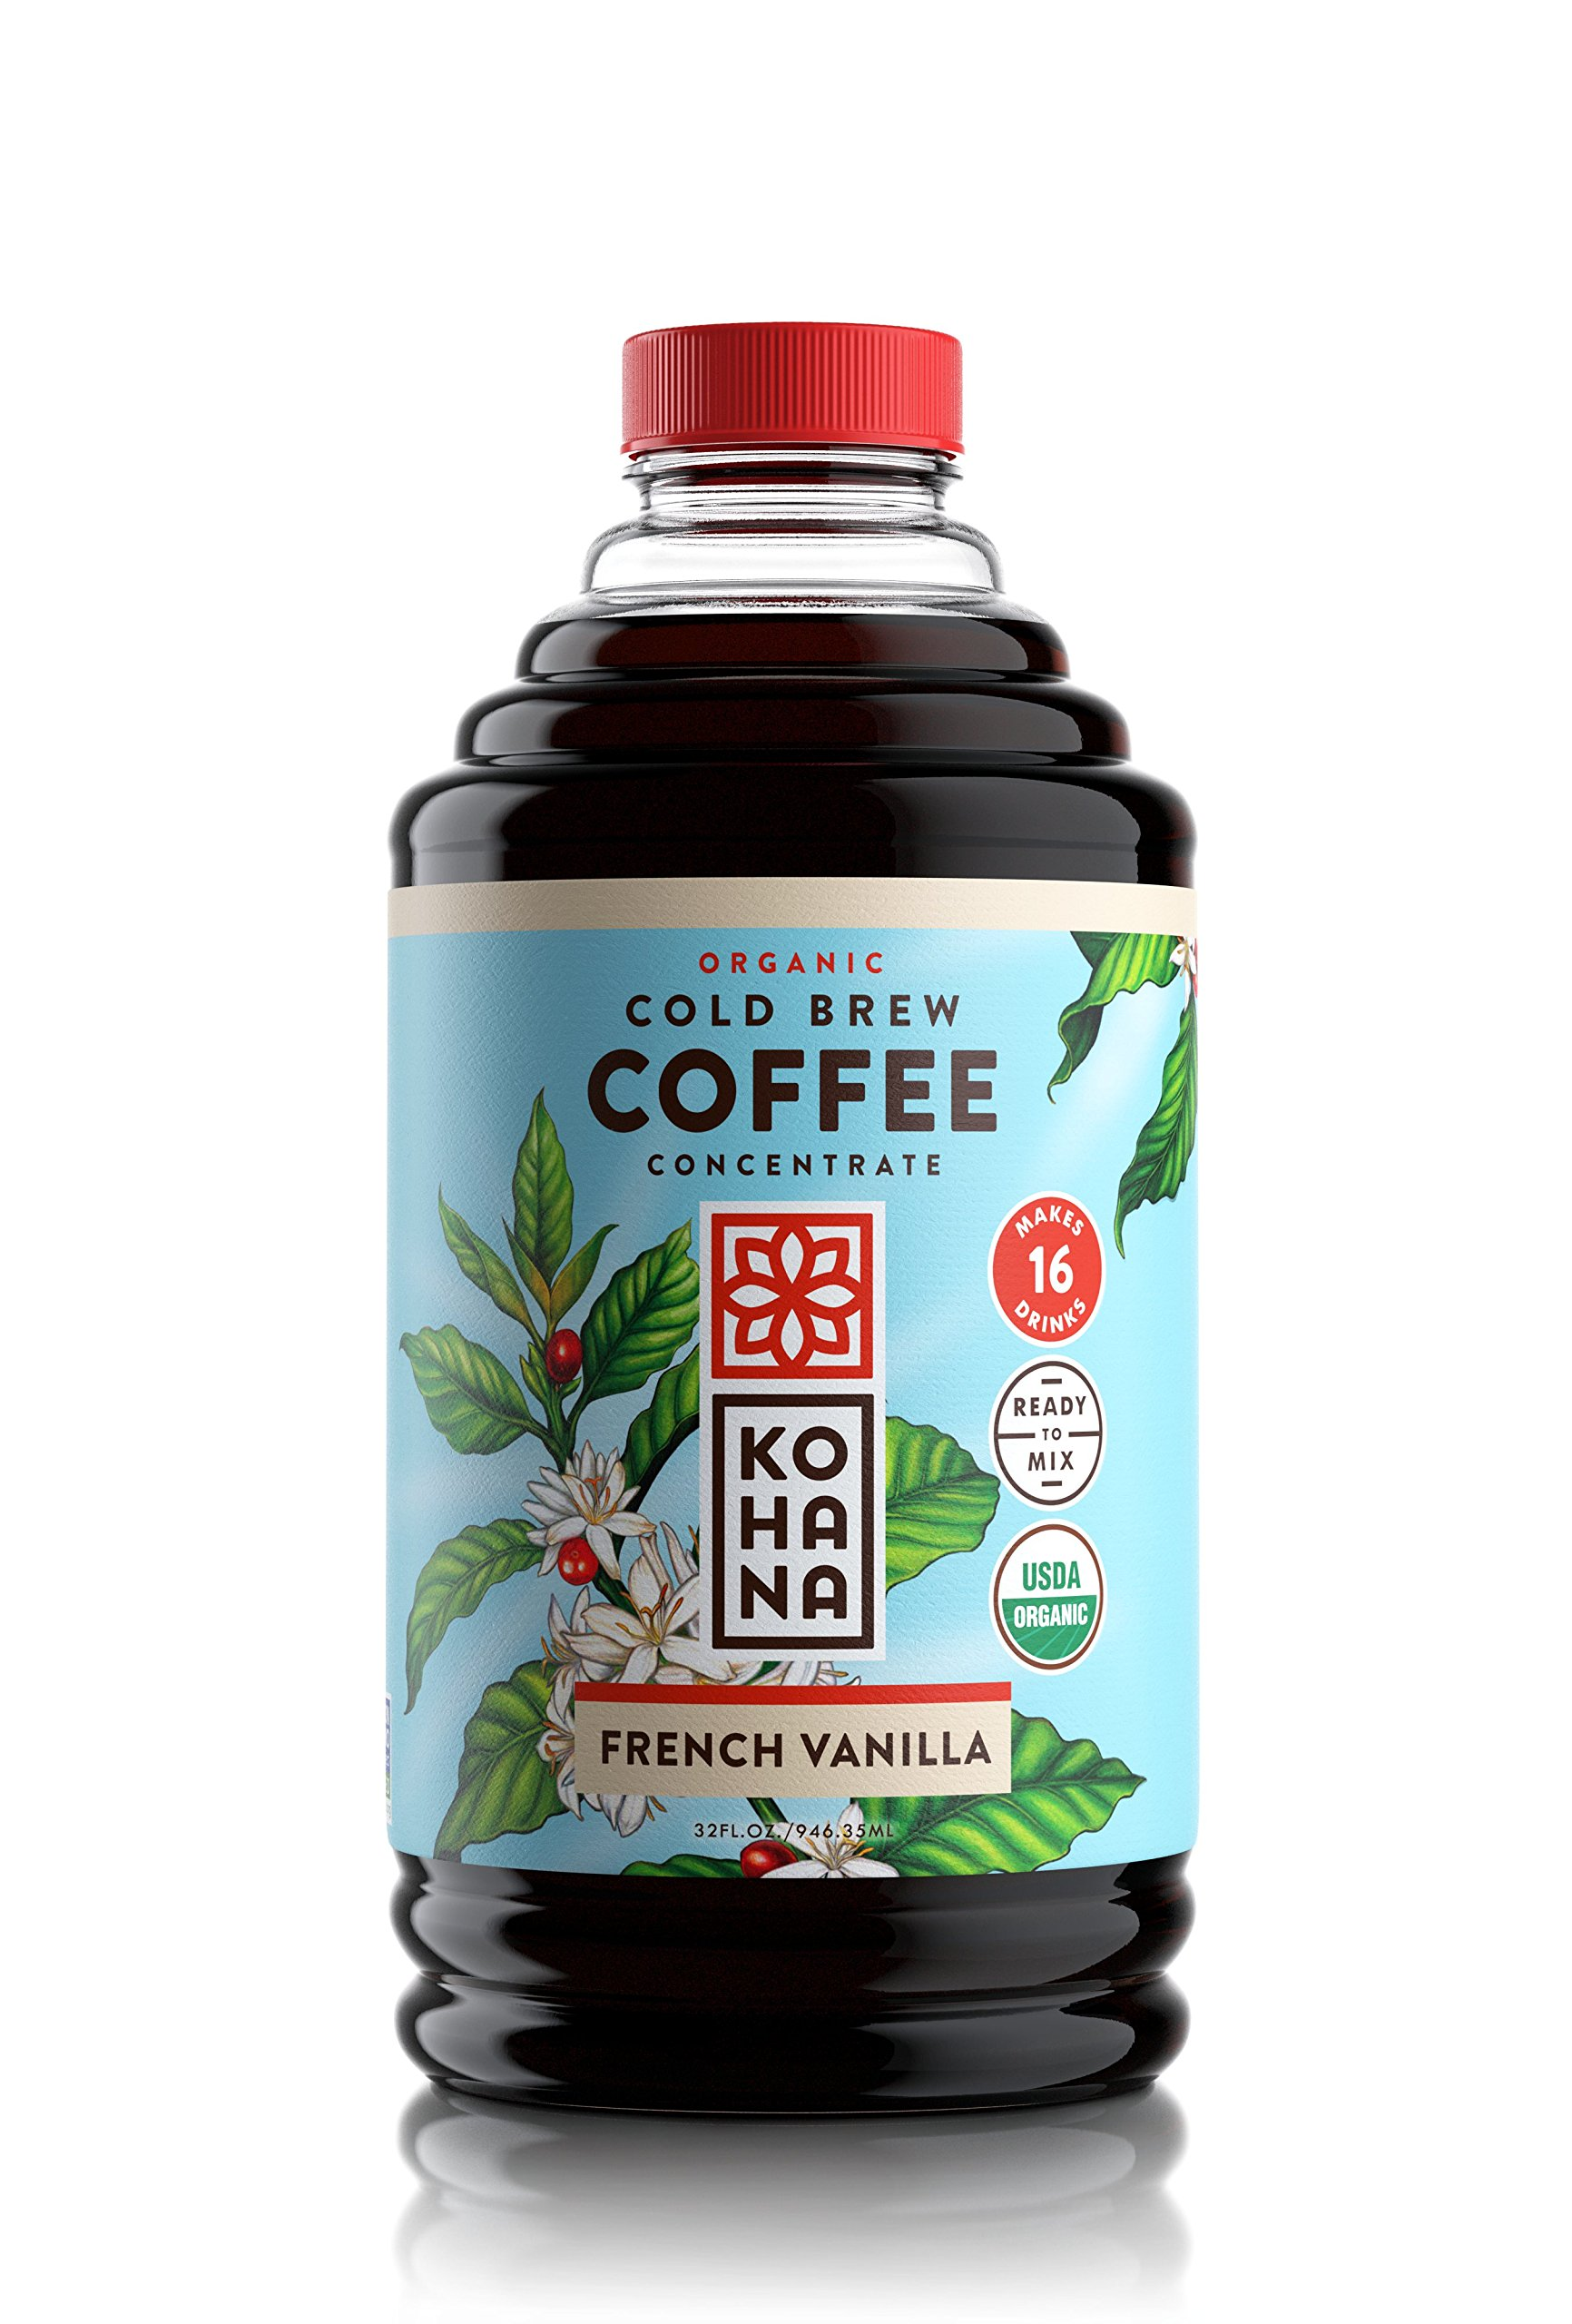 Kohana Cold Brew Coffee Concentrate, Organic, French Vanilla, 32 Ounce, Best Zero Calorie Low Acid Iced Coffee, Instant, Convenient and On The Go, Makes 16 Drinks, Single Bottle